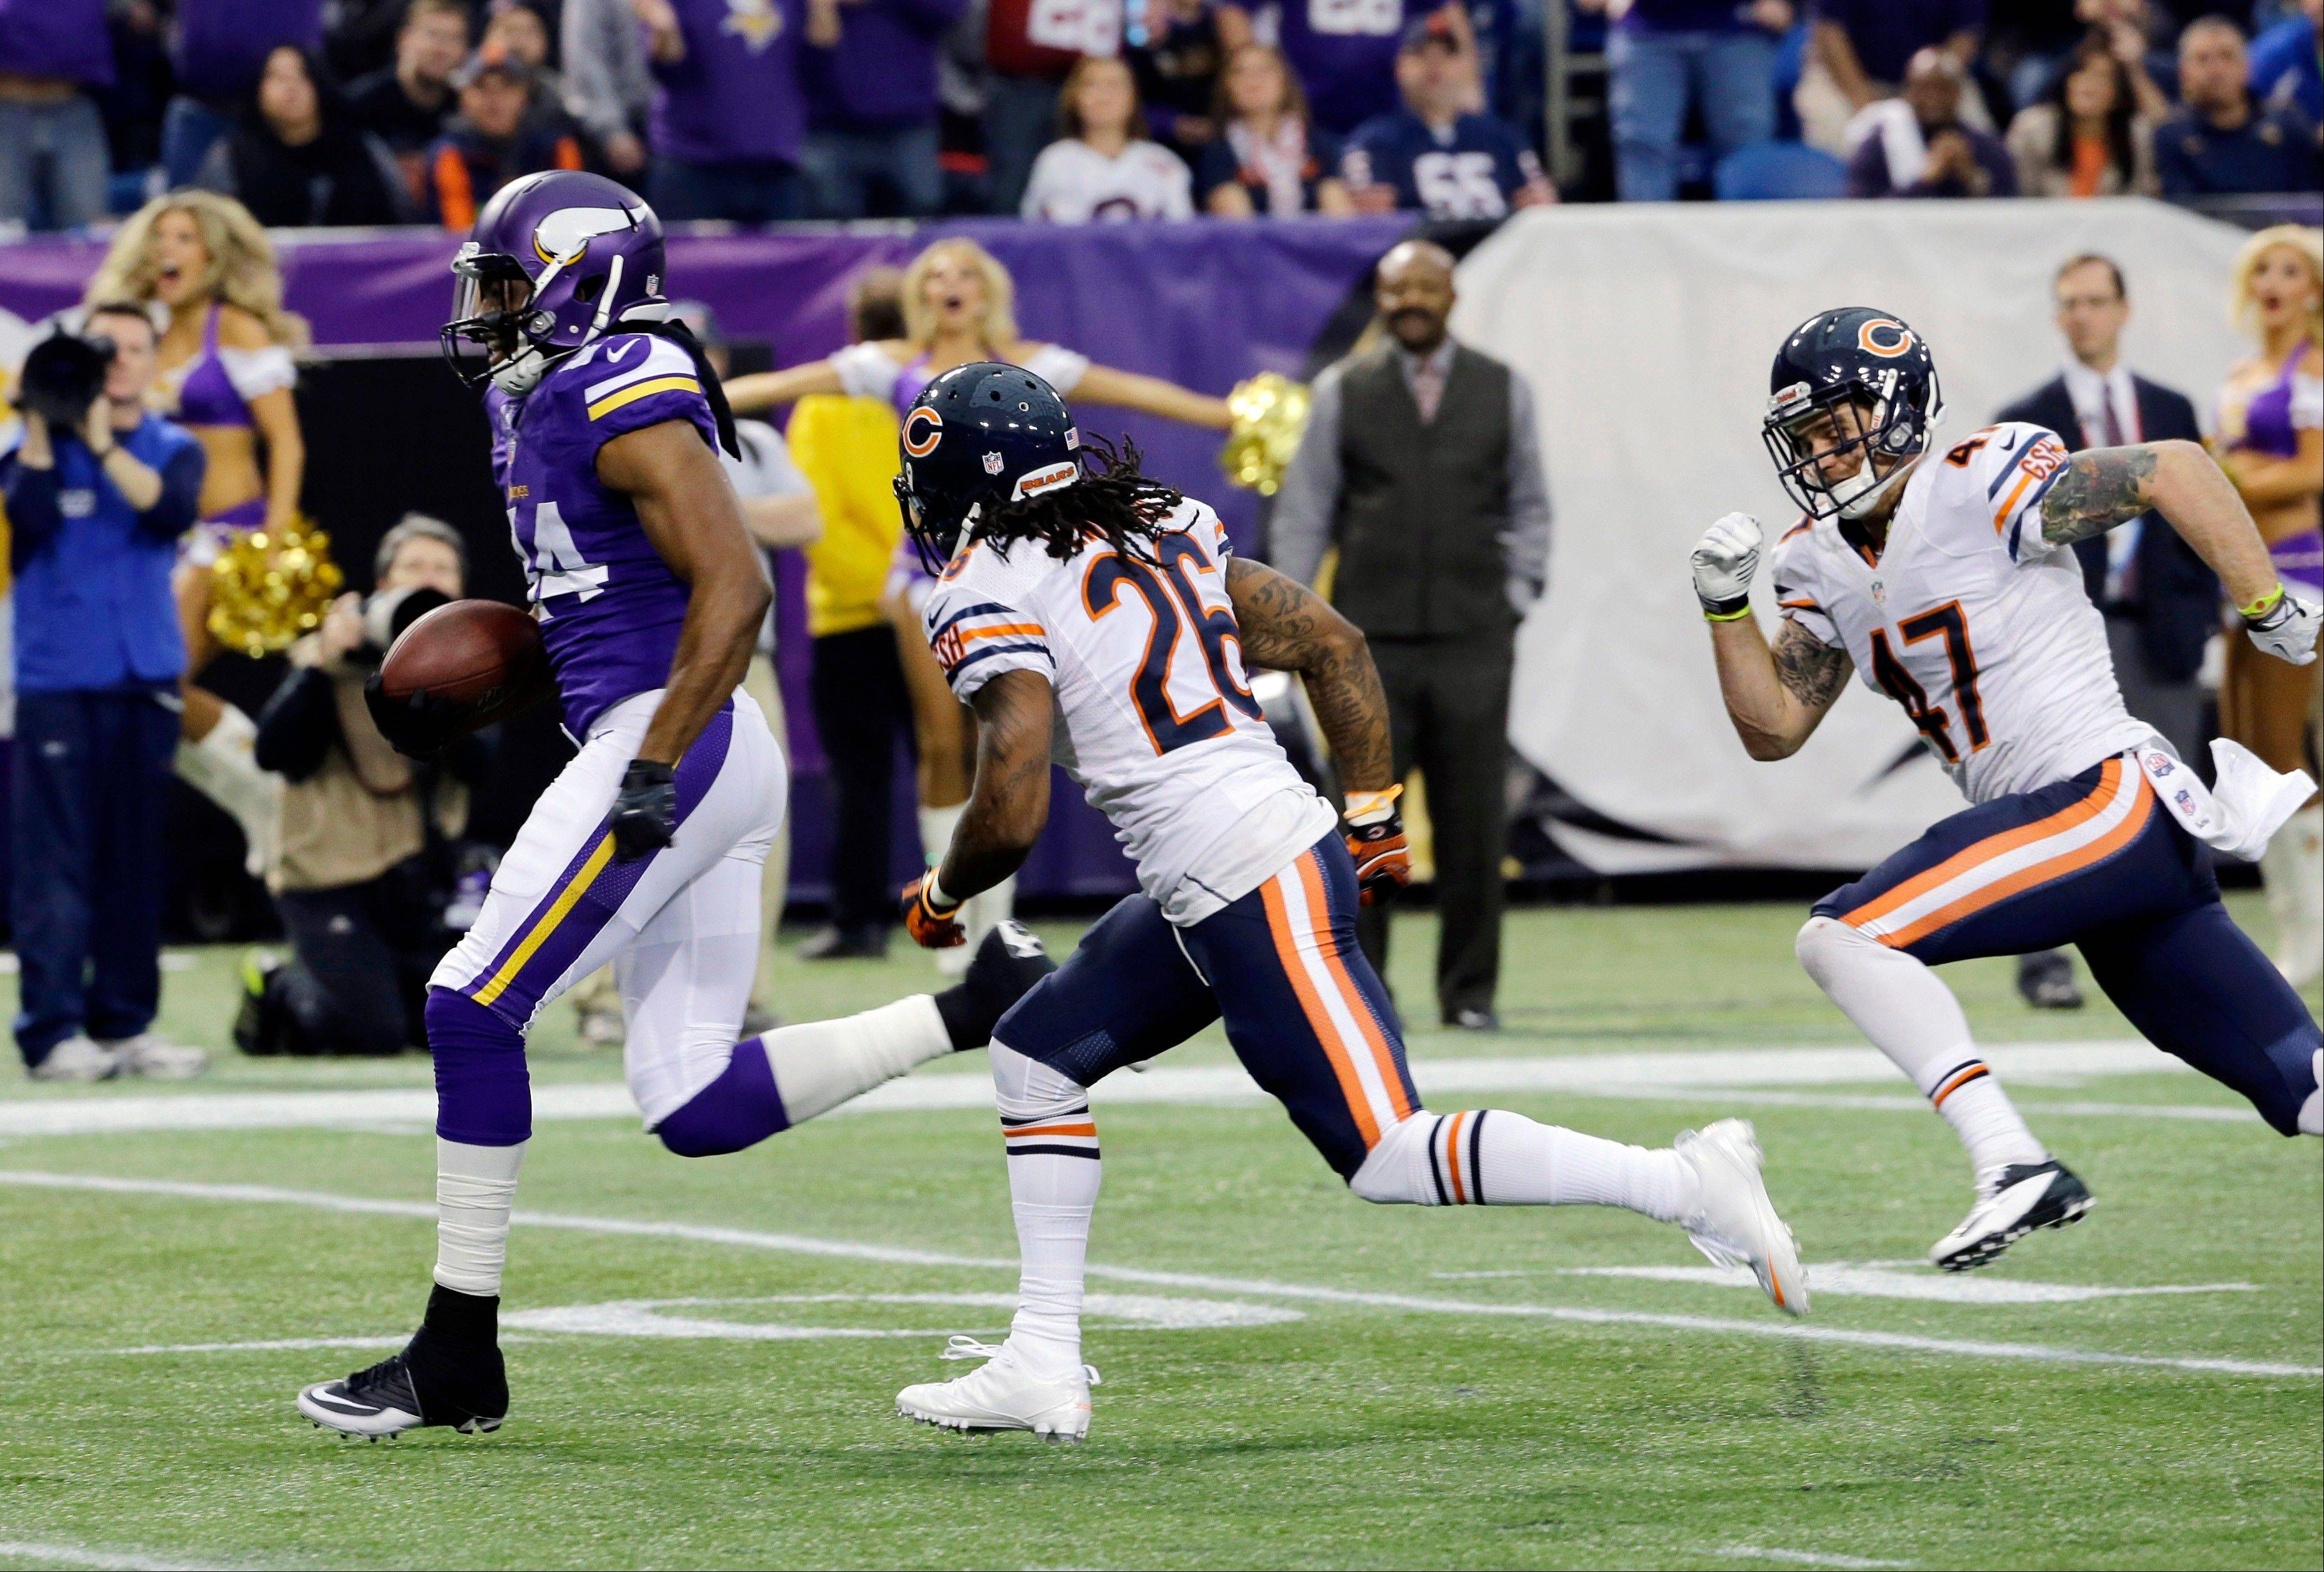 Minnesota Vikings wide receiver Cordarrelle Patterson, left, runs from Chicago Bears defenders Tim Jennings (26) and Chris Conte (47) for a 33-yard touchdown run in the first half.